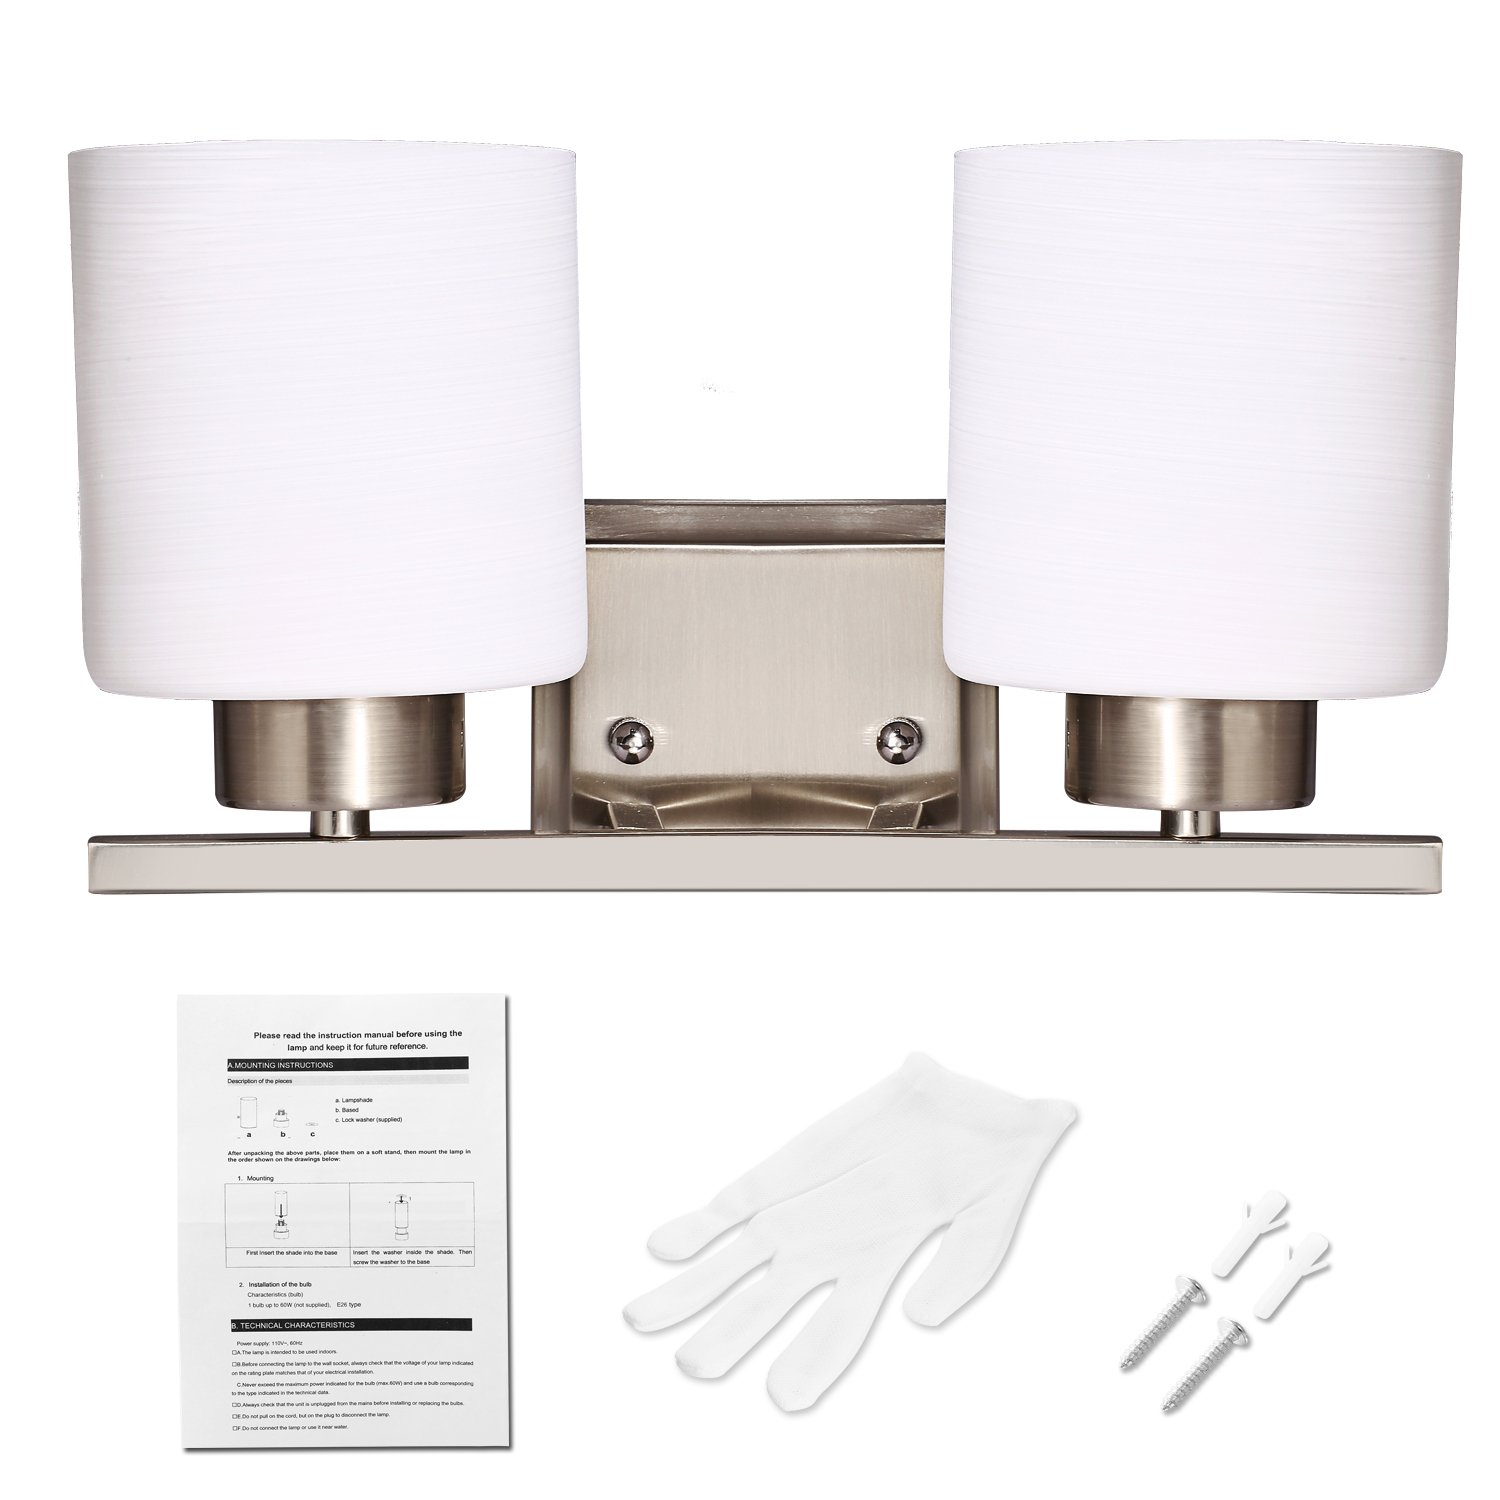 Bazal Bathroom Wall Sconces 2 Bulb Vanity Light Fixture Bath Wiring A Bar Cover Interior Lighting With Glass Shade Brushed Nickel White Glove